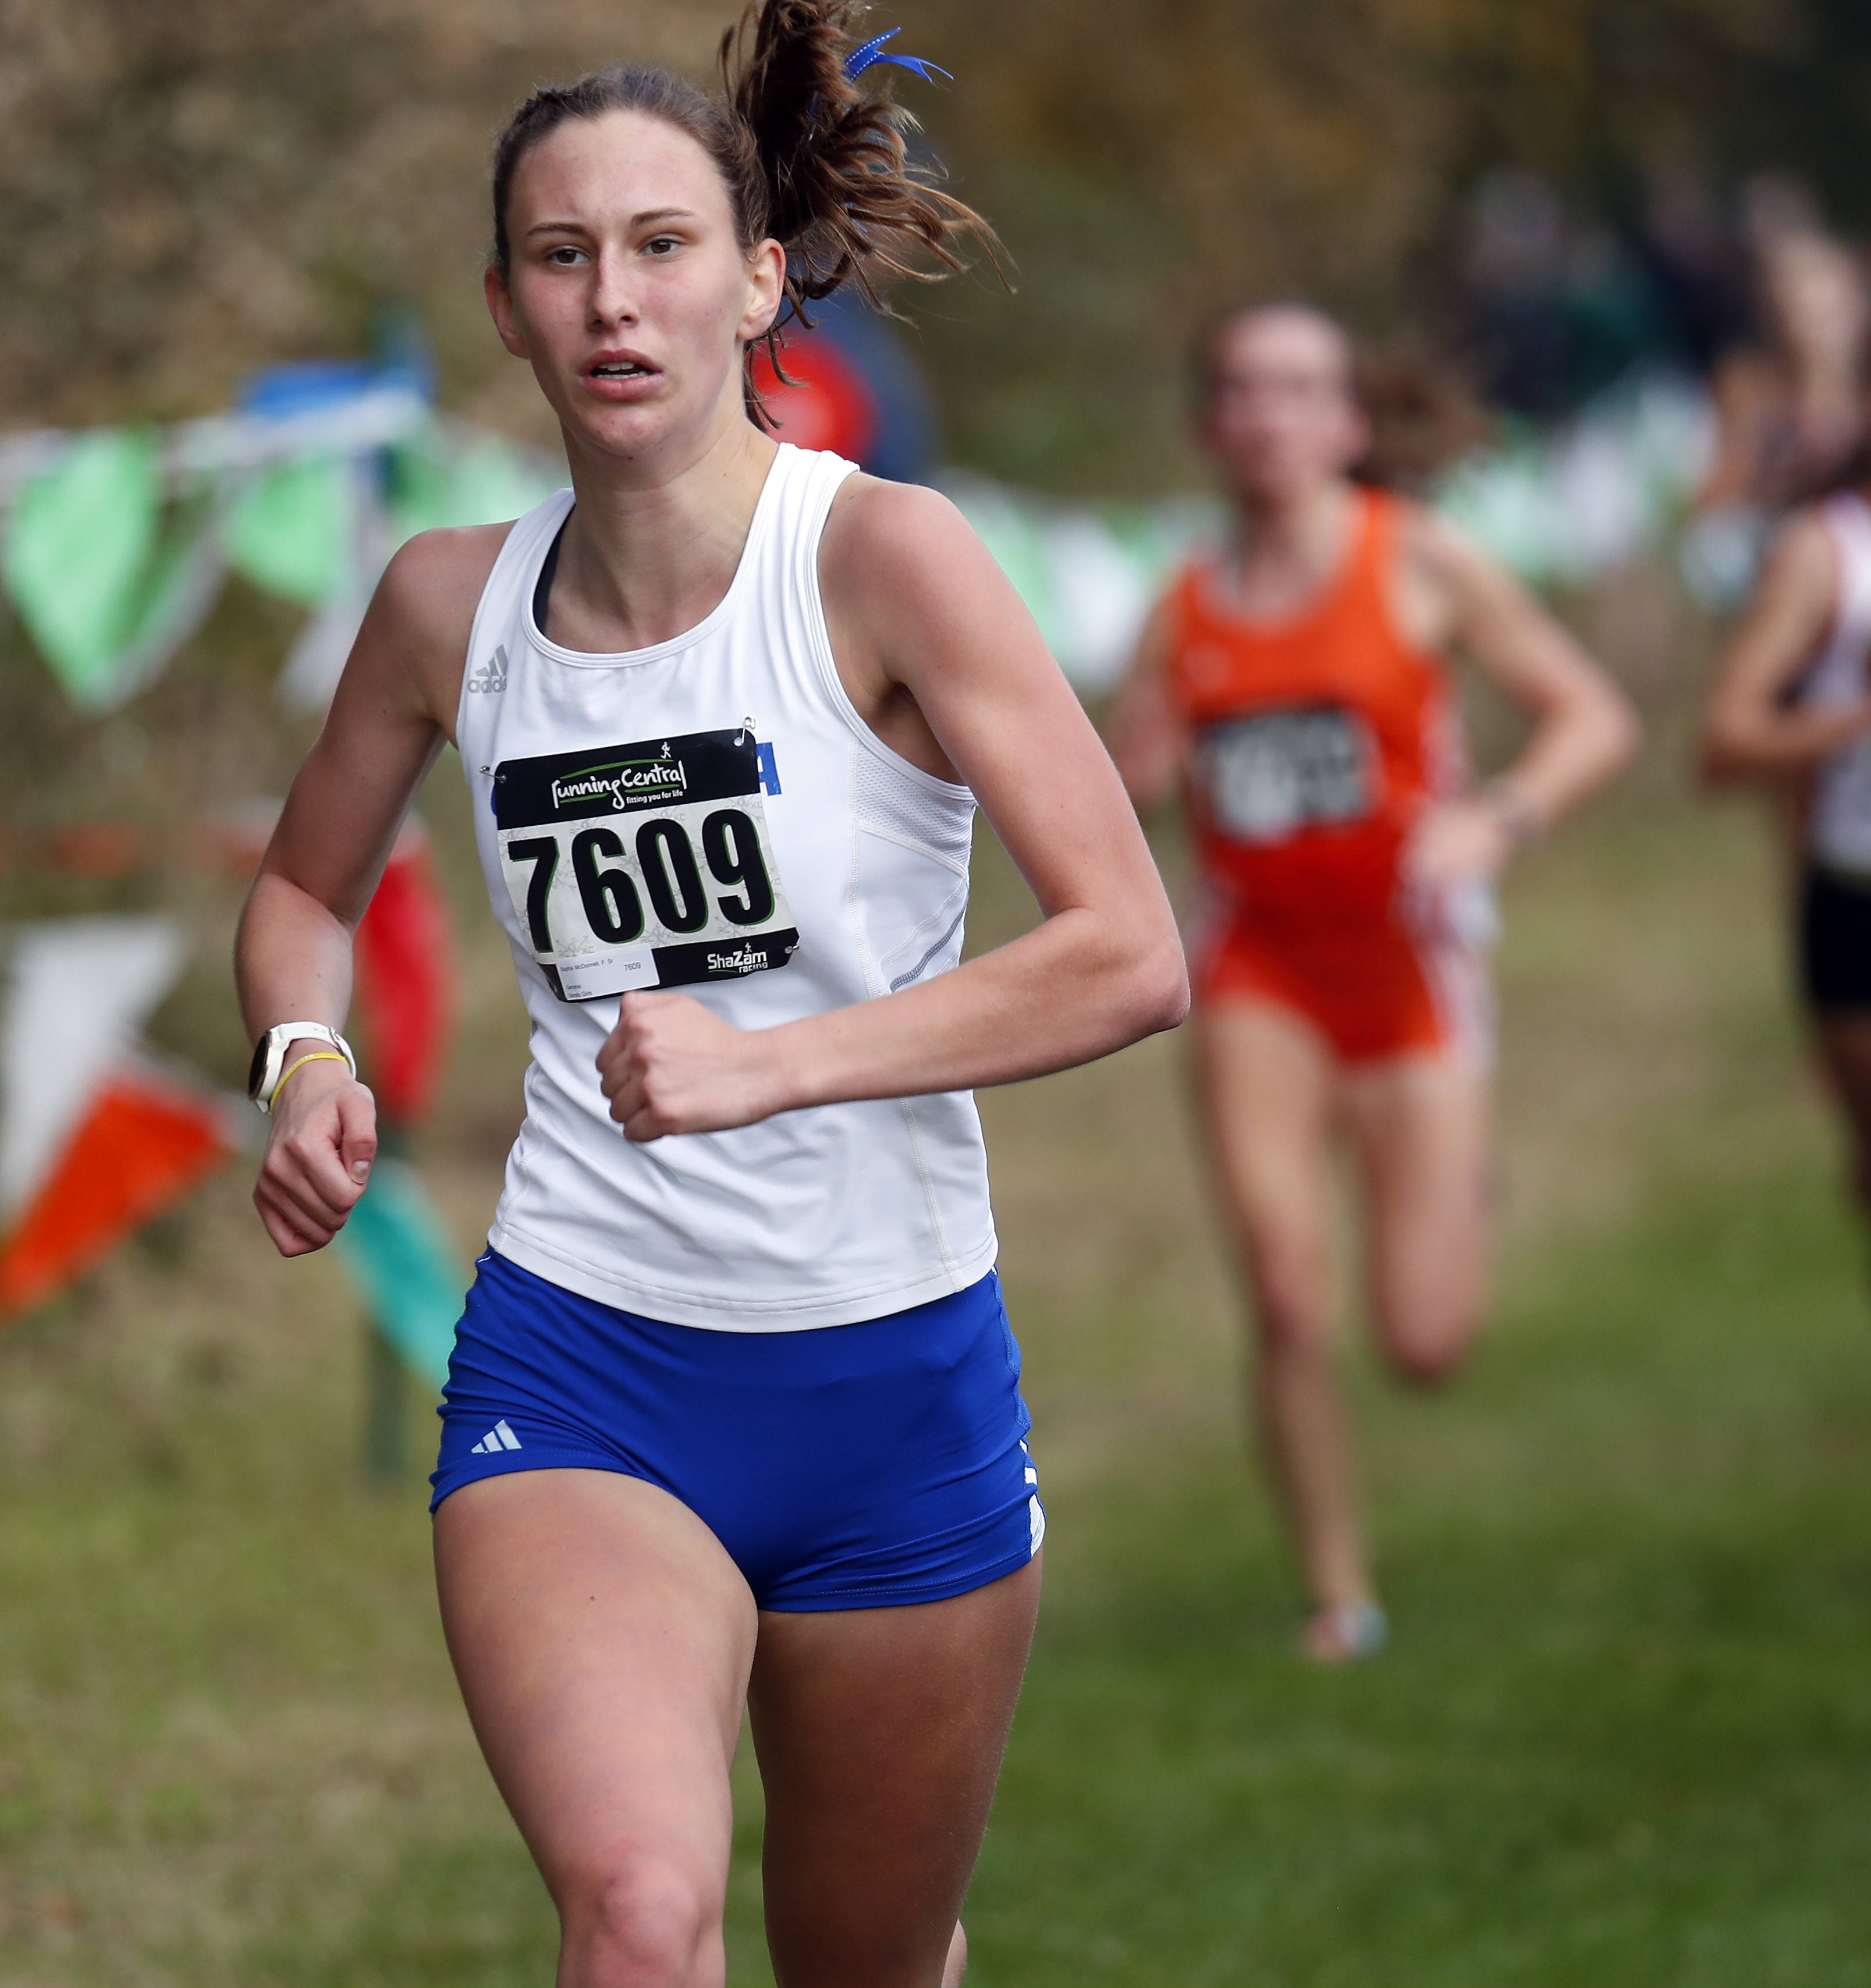 Sophia McDonnell of Geneva Saturday during the Waubonsie Valley cross country sectional in Aurora.